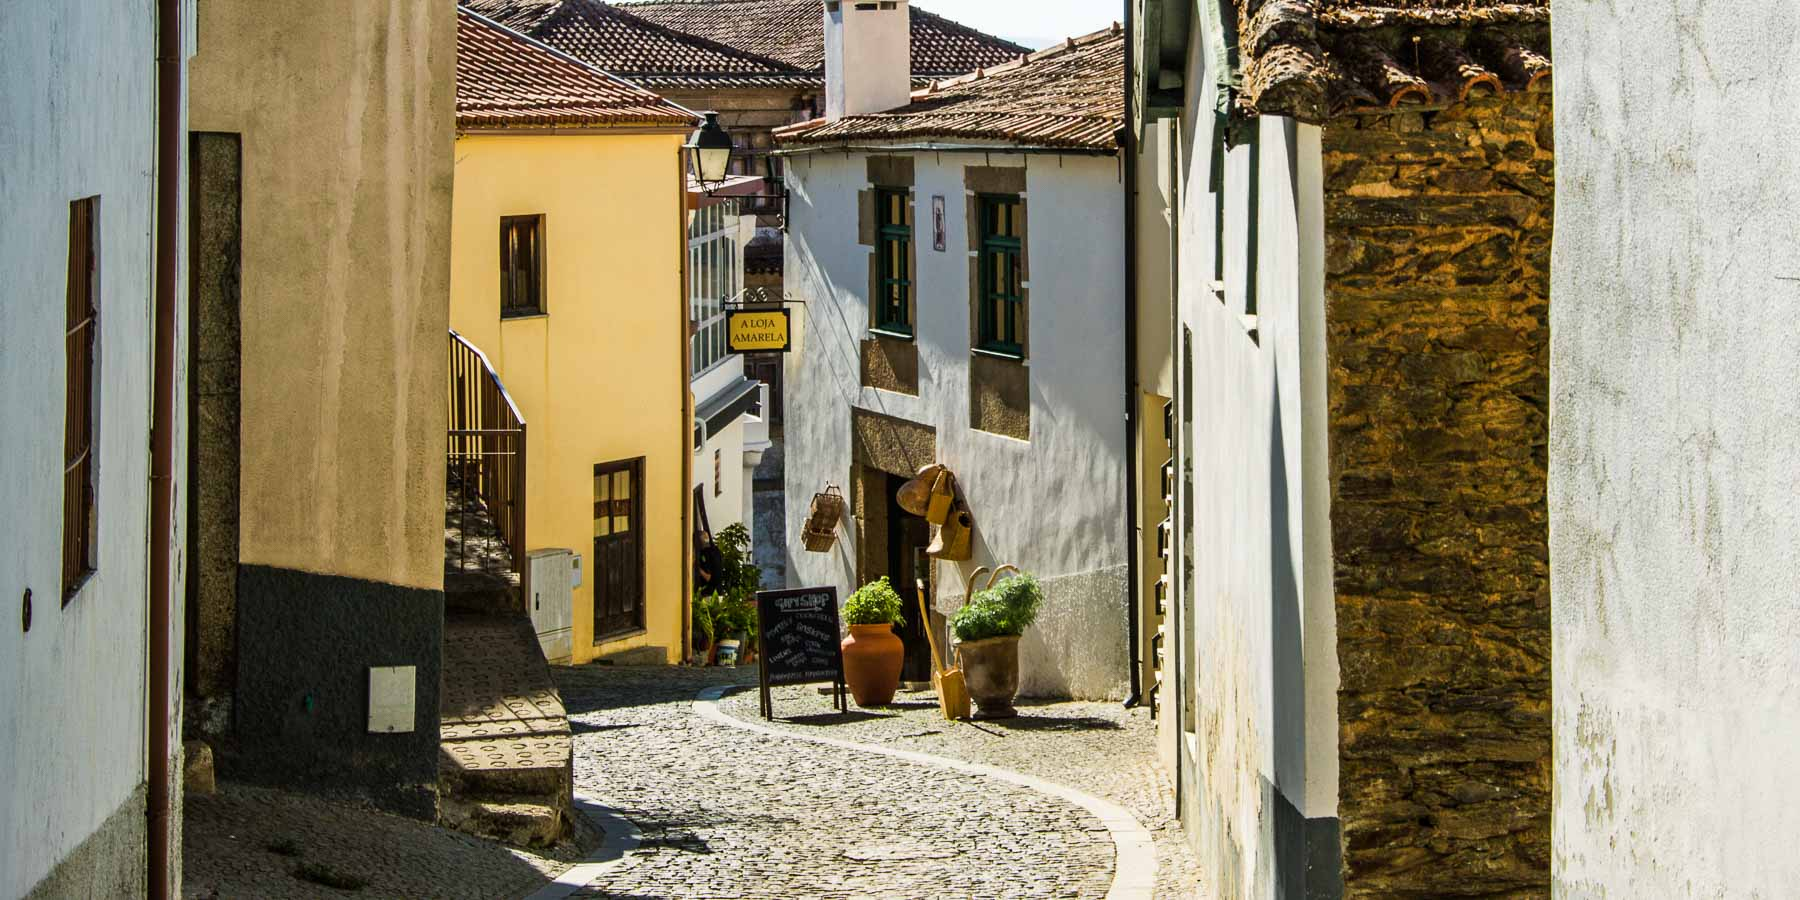 When you rent a car in Portugal, you have to be ready for small roads like this one in Provesende.